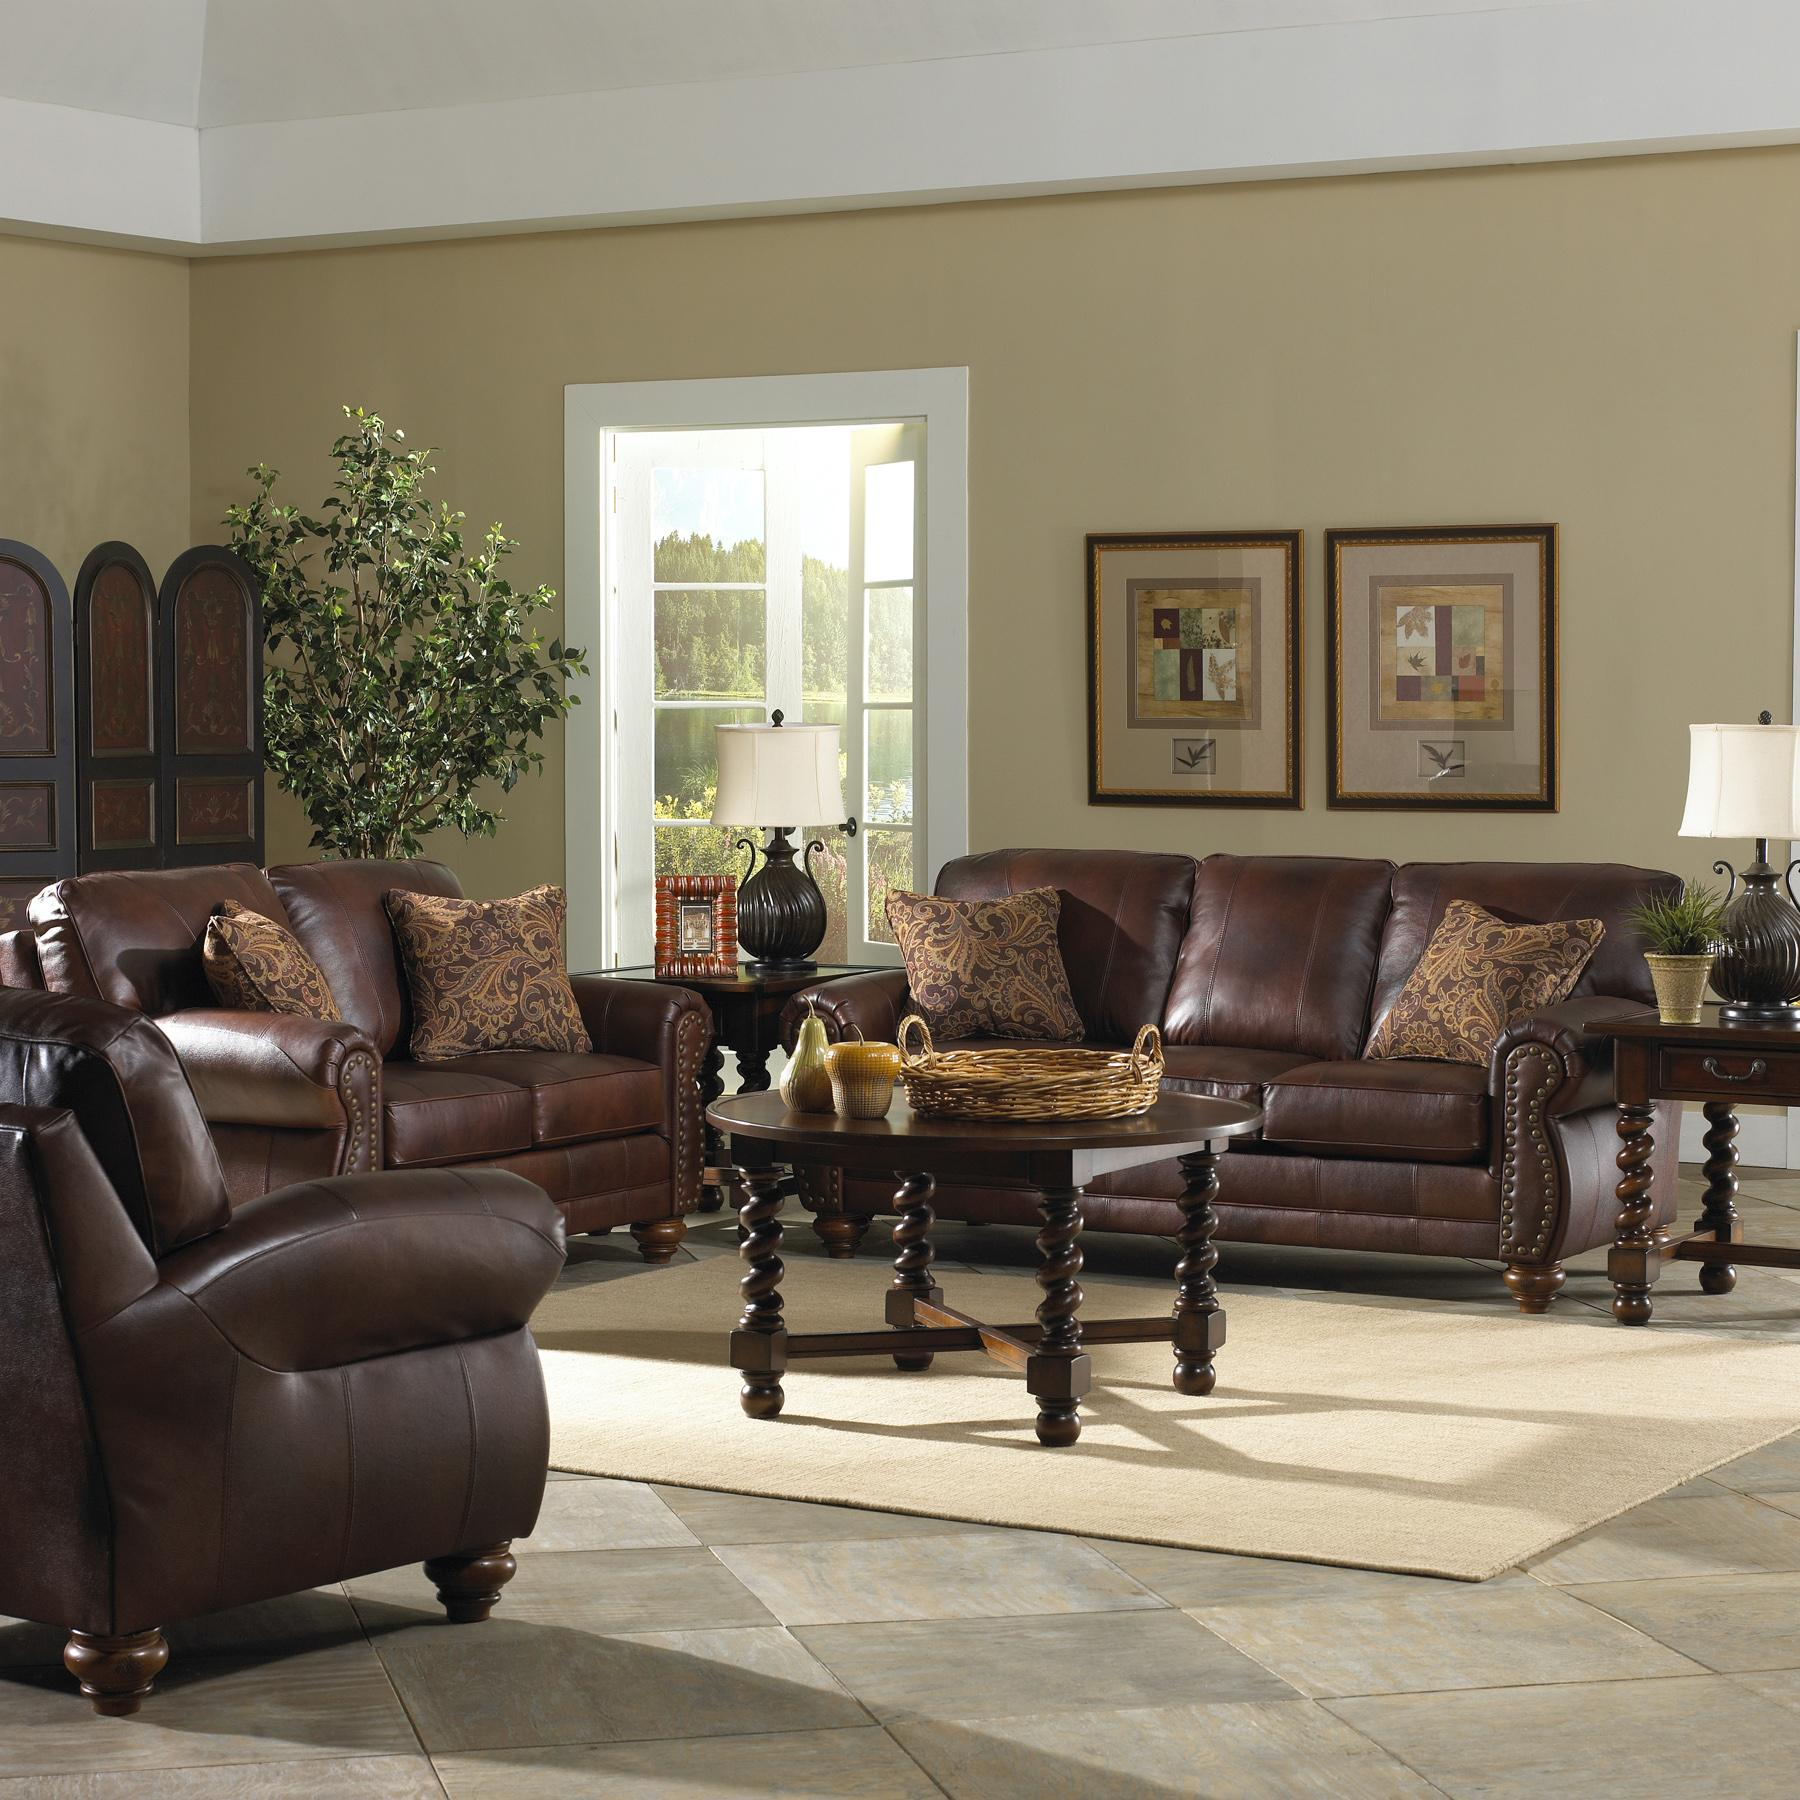 Best Home Furnishings Le Stationary Leather Sofa With Nailhead Trim By Sofas Lesville Carmel Avon Indianapolis Indiana